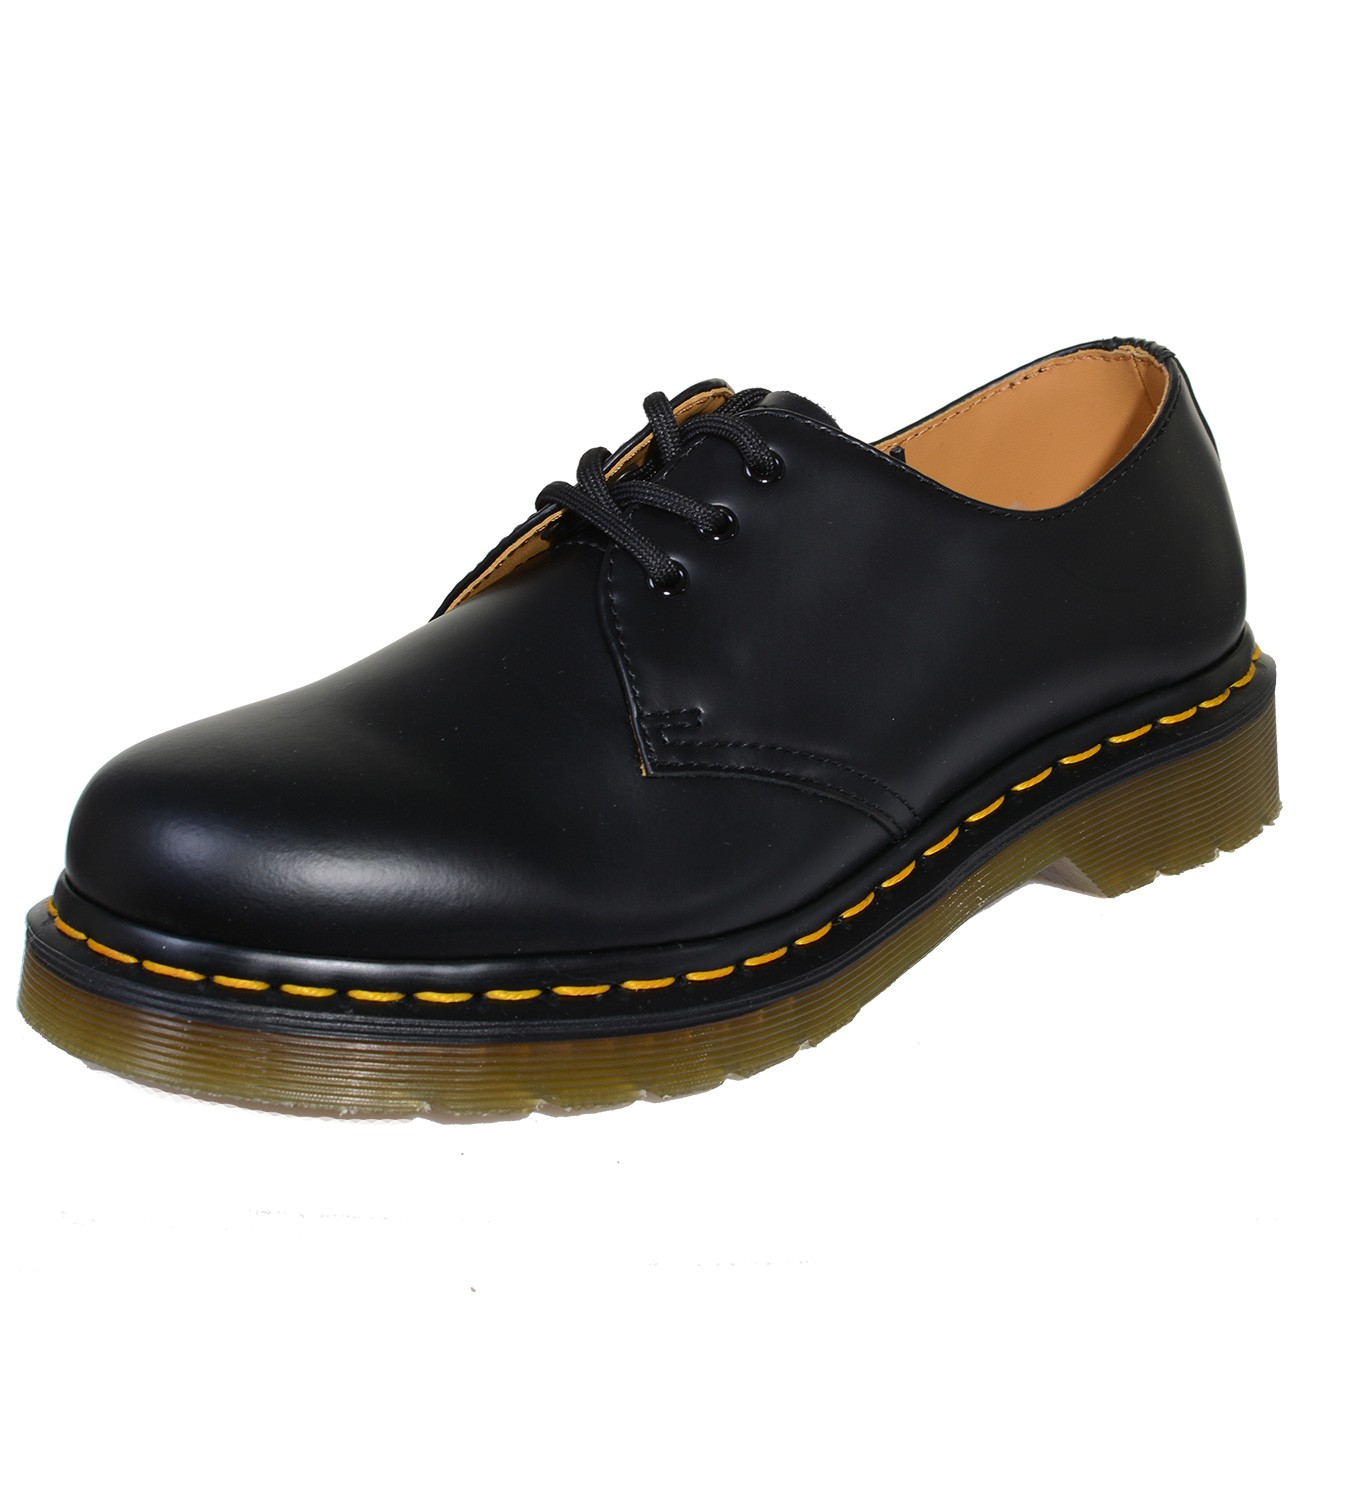 Details about Dr. Martens 3 Hole Docs Classic Loafer Smooth Black 1461 with seam show original title